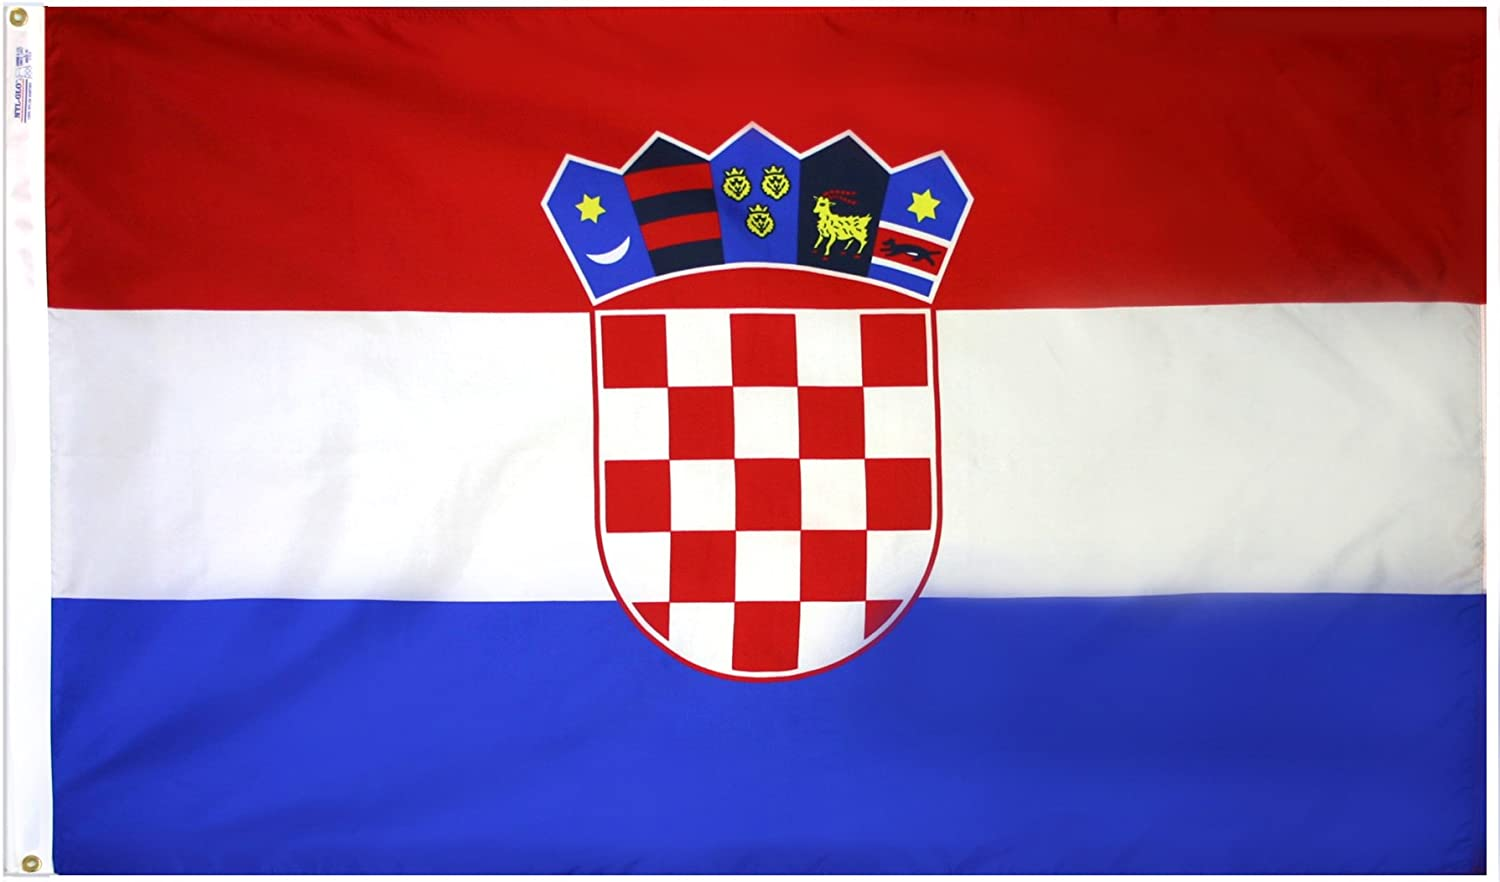 Croatia Flag 3x5 ft. Nylon SolarGuard NylGlo 100% Made in USA to Official United Nations Design Specifications by Annin Flagmakers. Model 191836